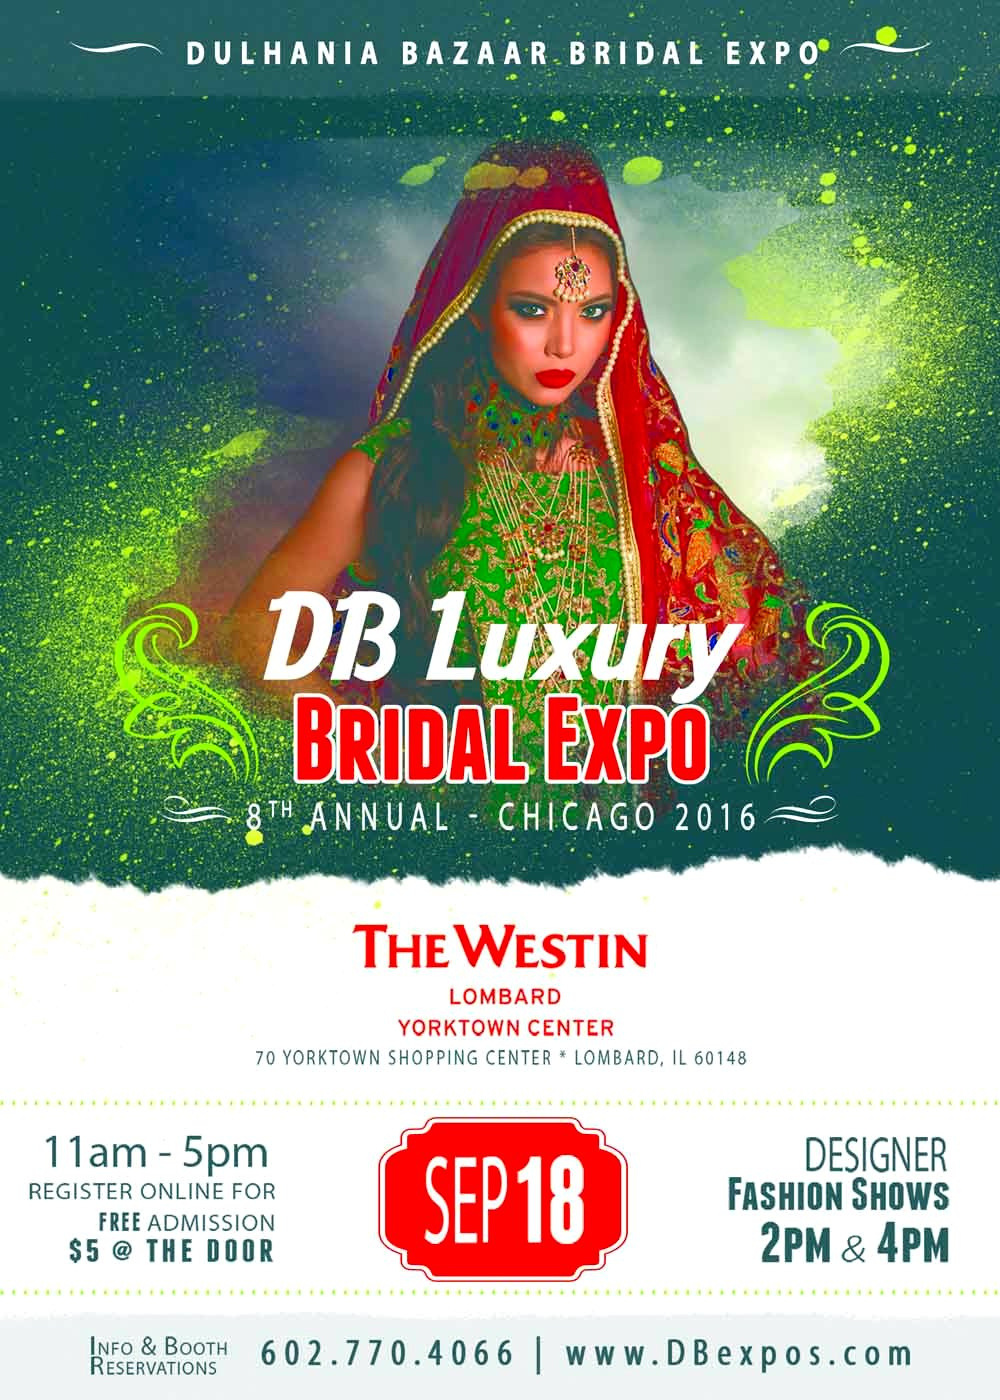 8th Annual DB Luxury Bridal Expo – Chicago 2016!!!